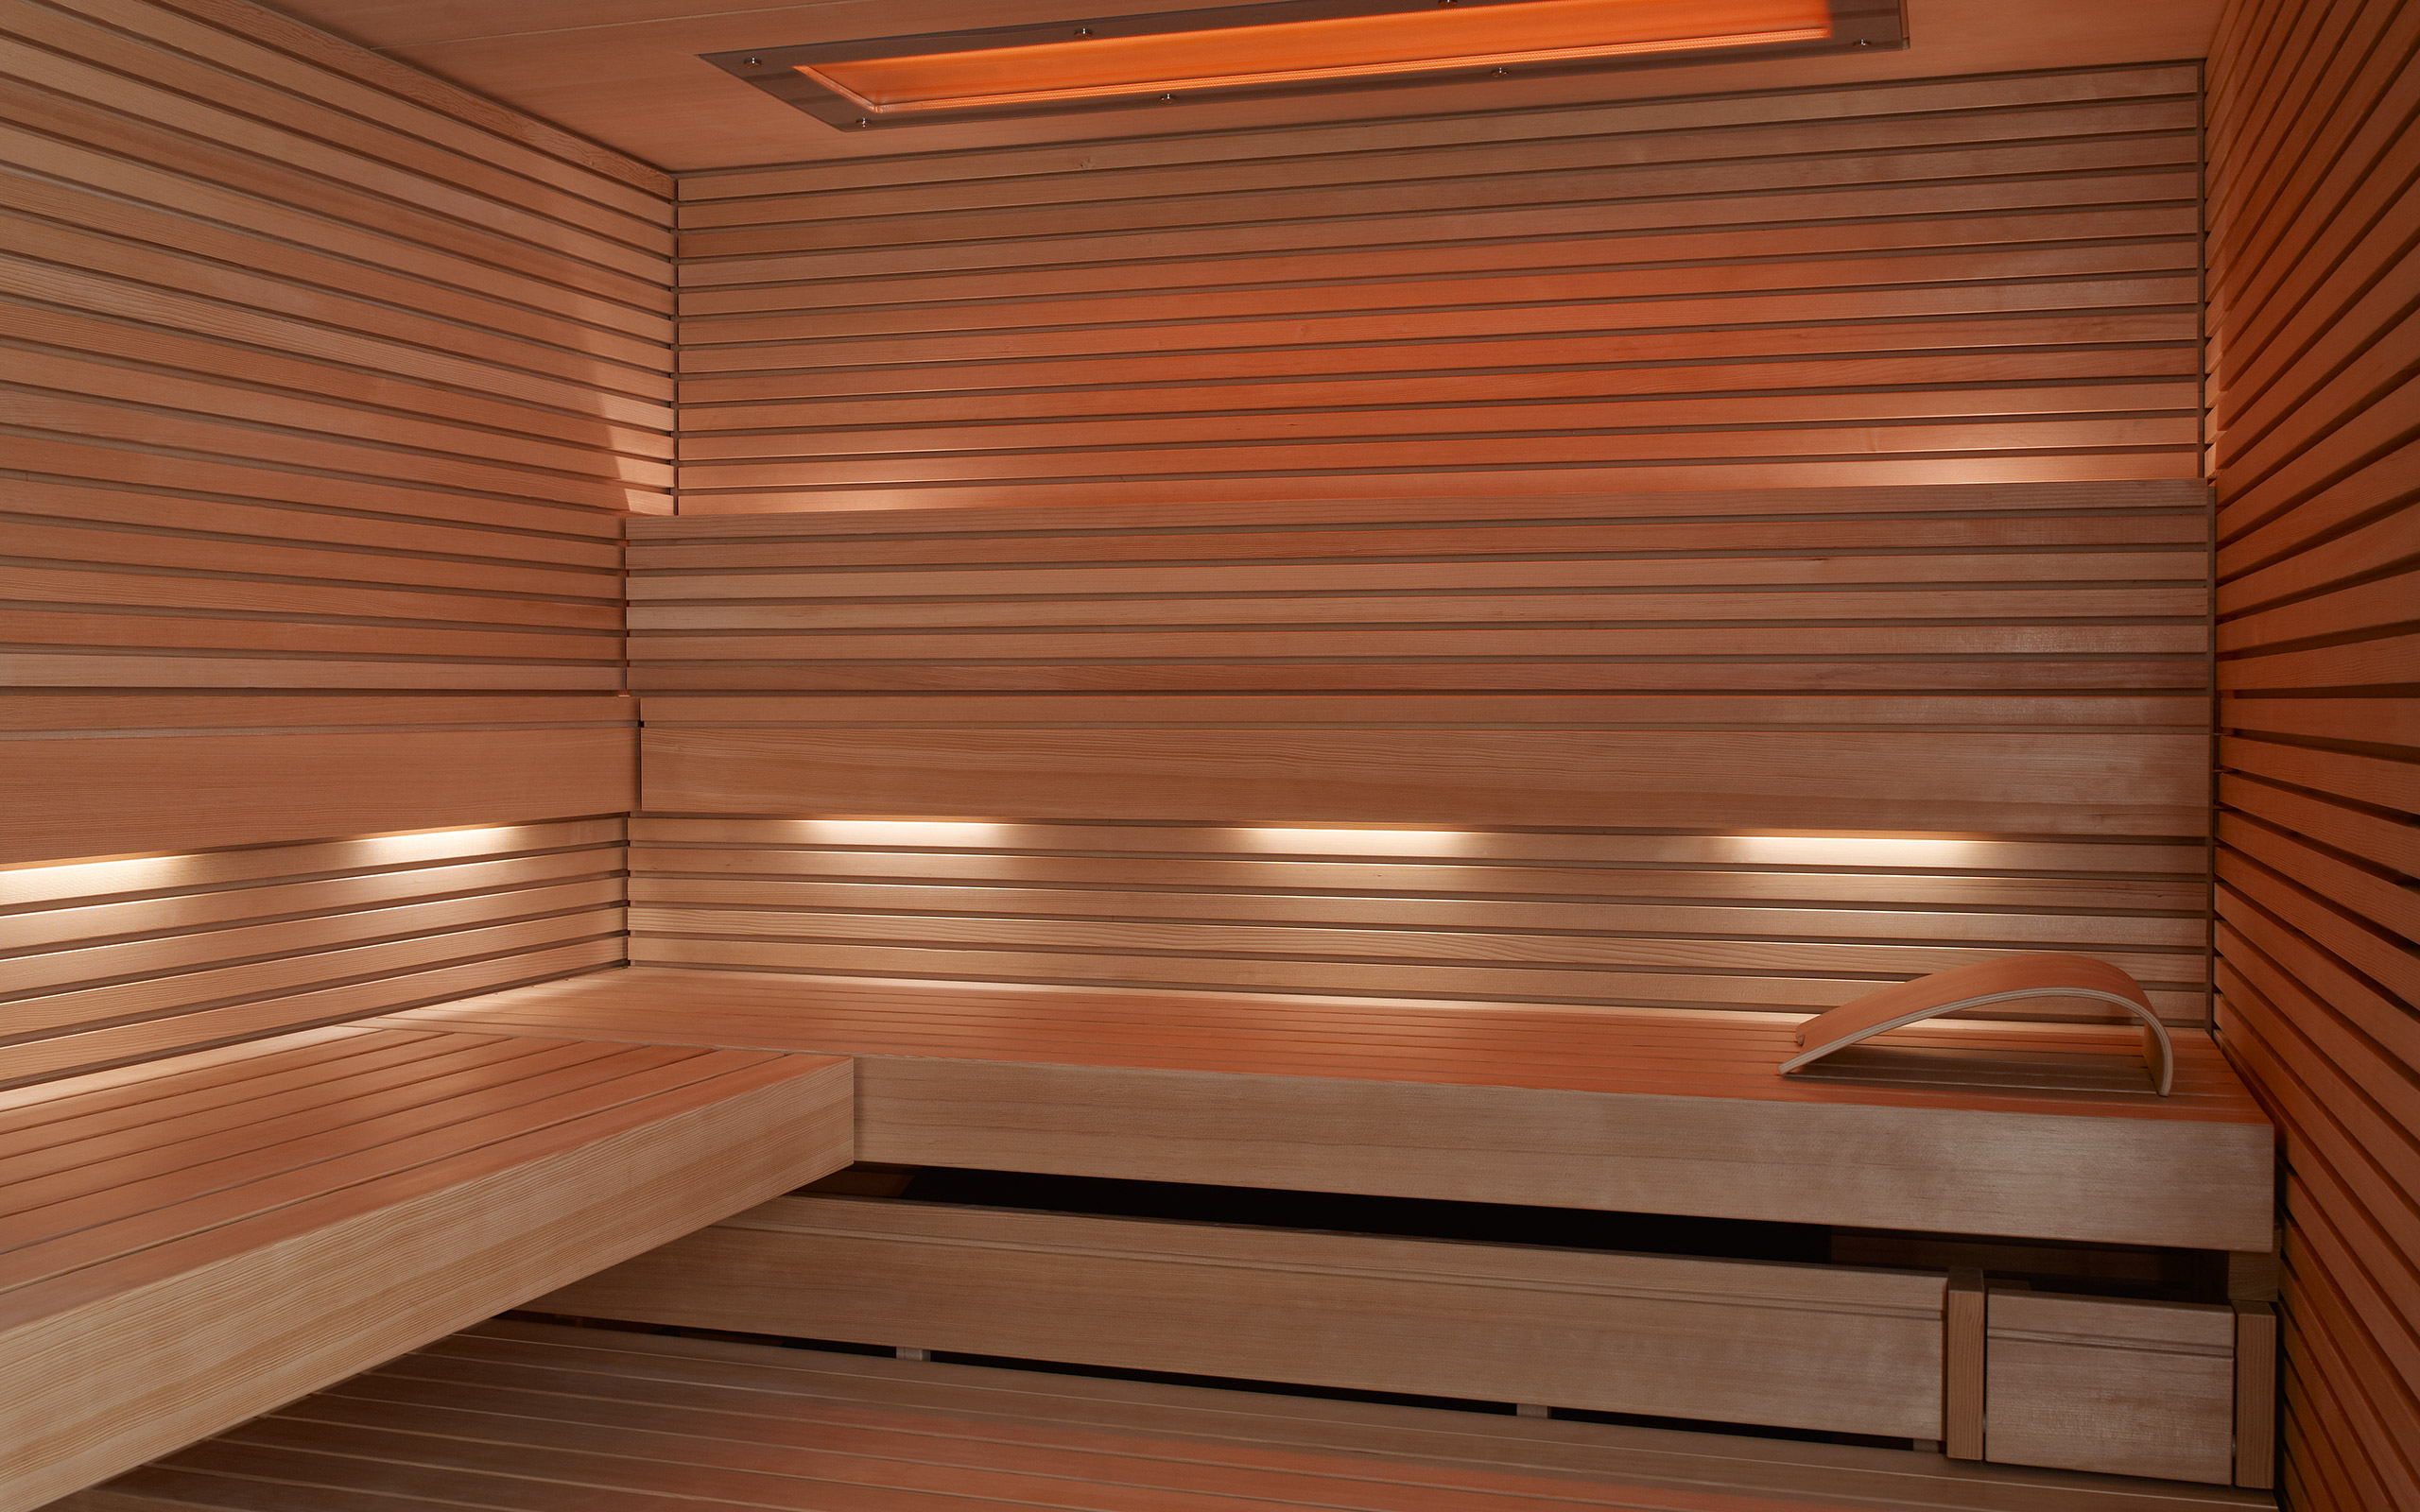 sauna pure die schlichte elegante sauna. Black Bedroom Furniture Sets. Home Design Ideas